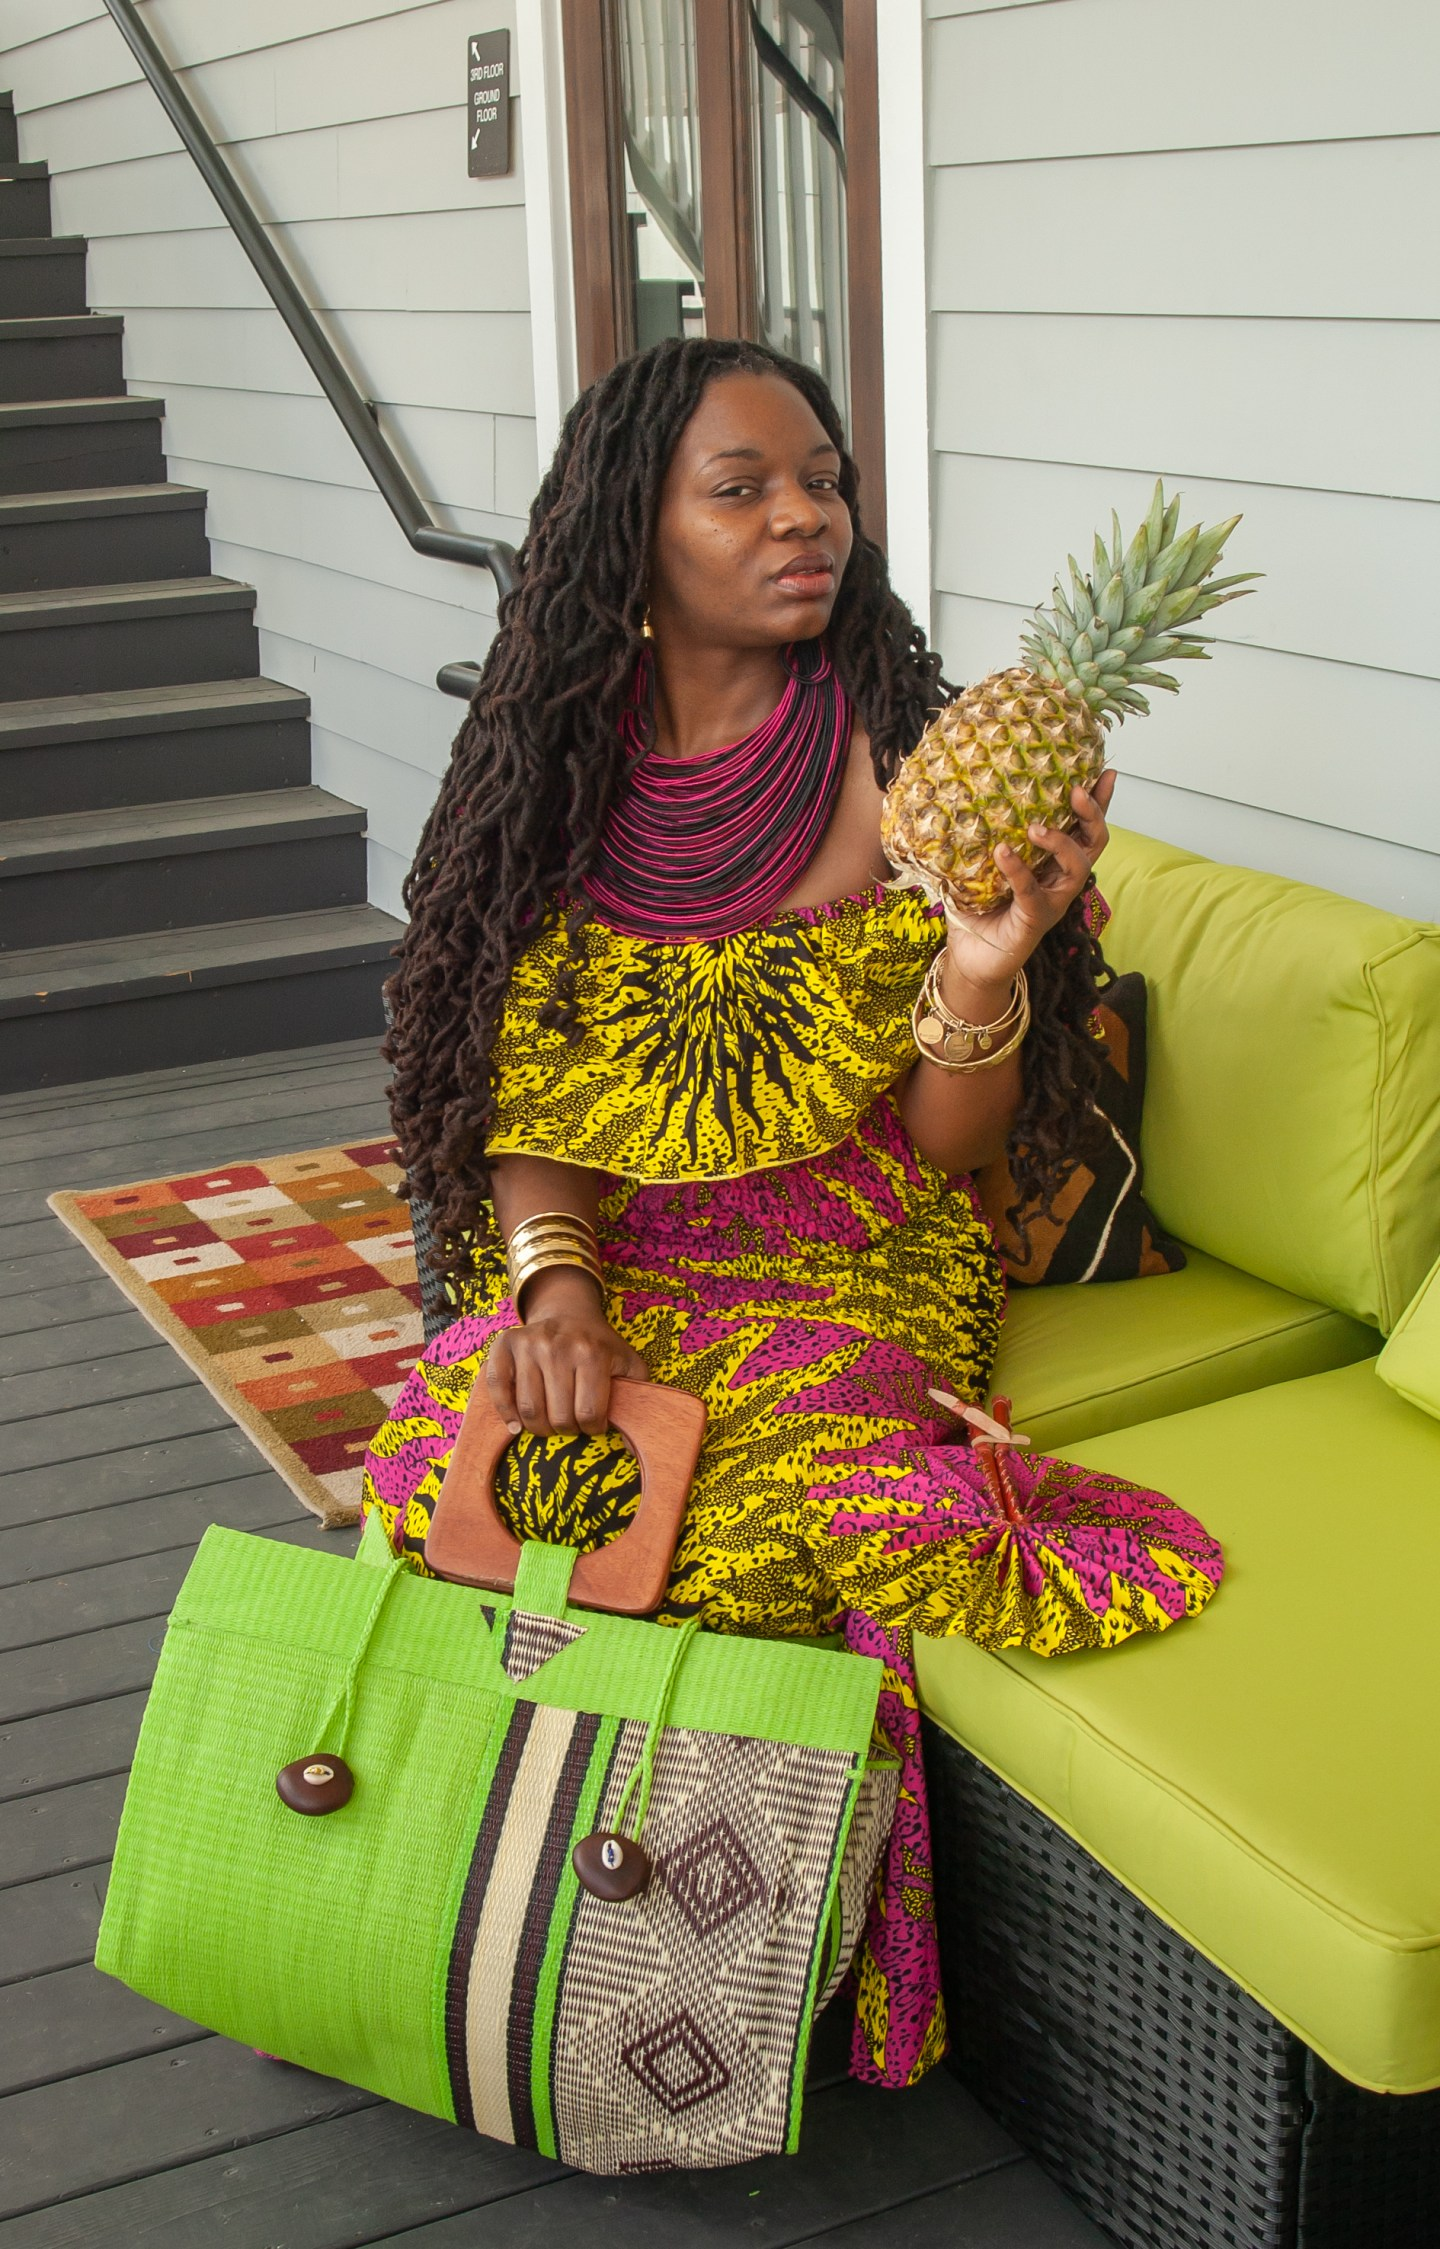 BBCC-2019_14 Gullah Heritage Through Design: Home Decor in Beaufort, SC